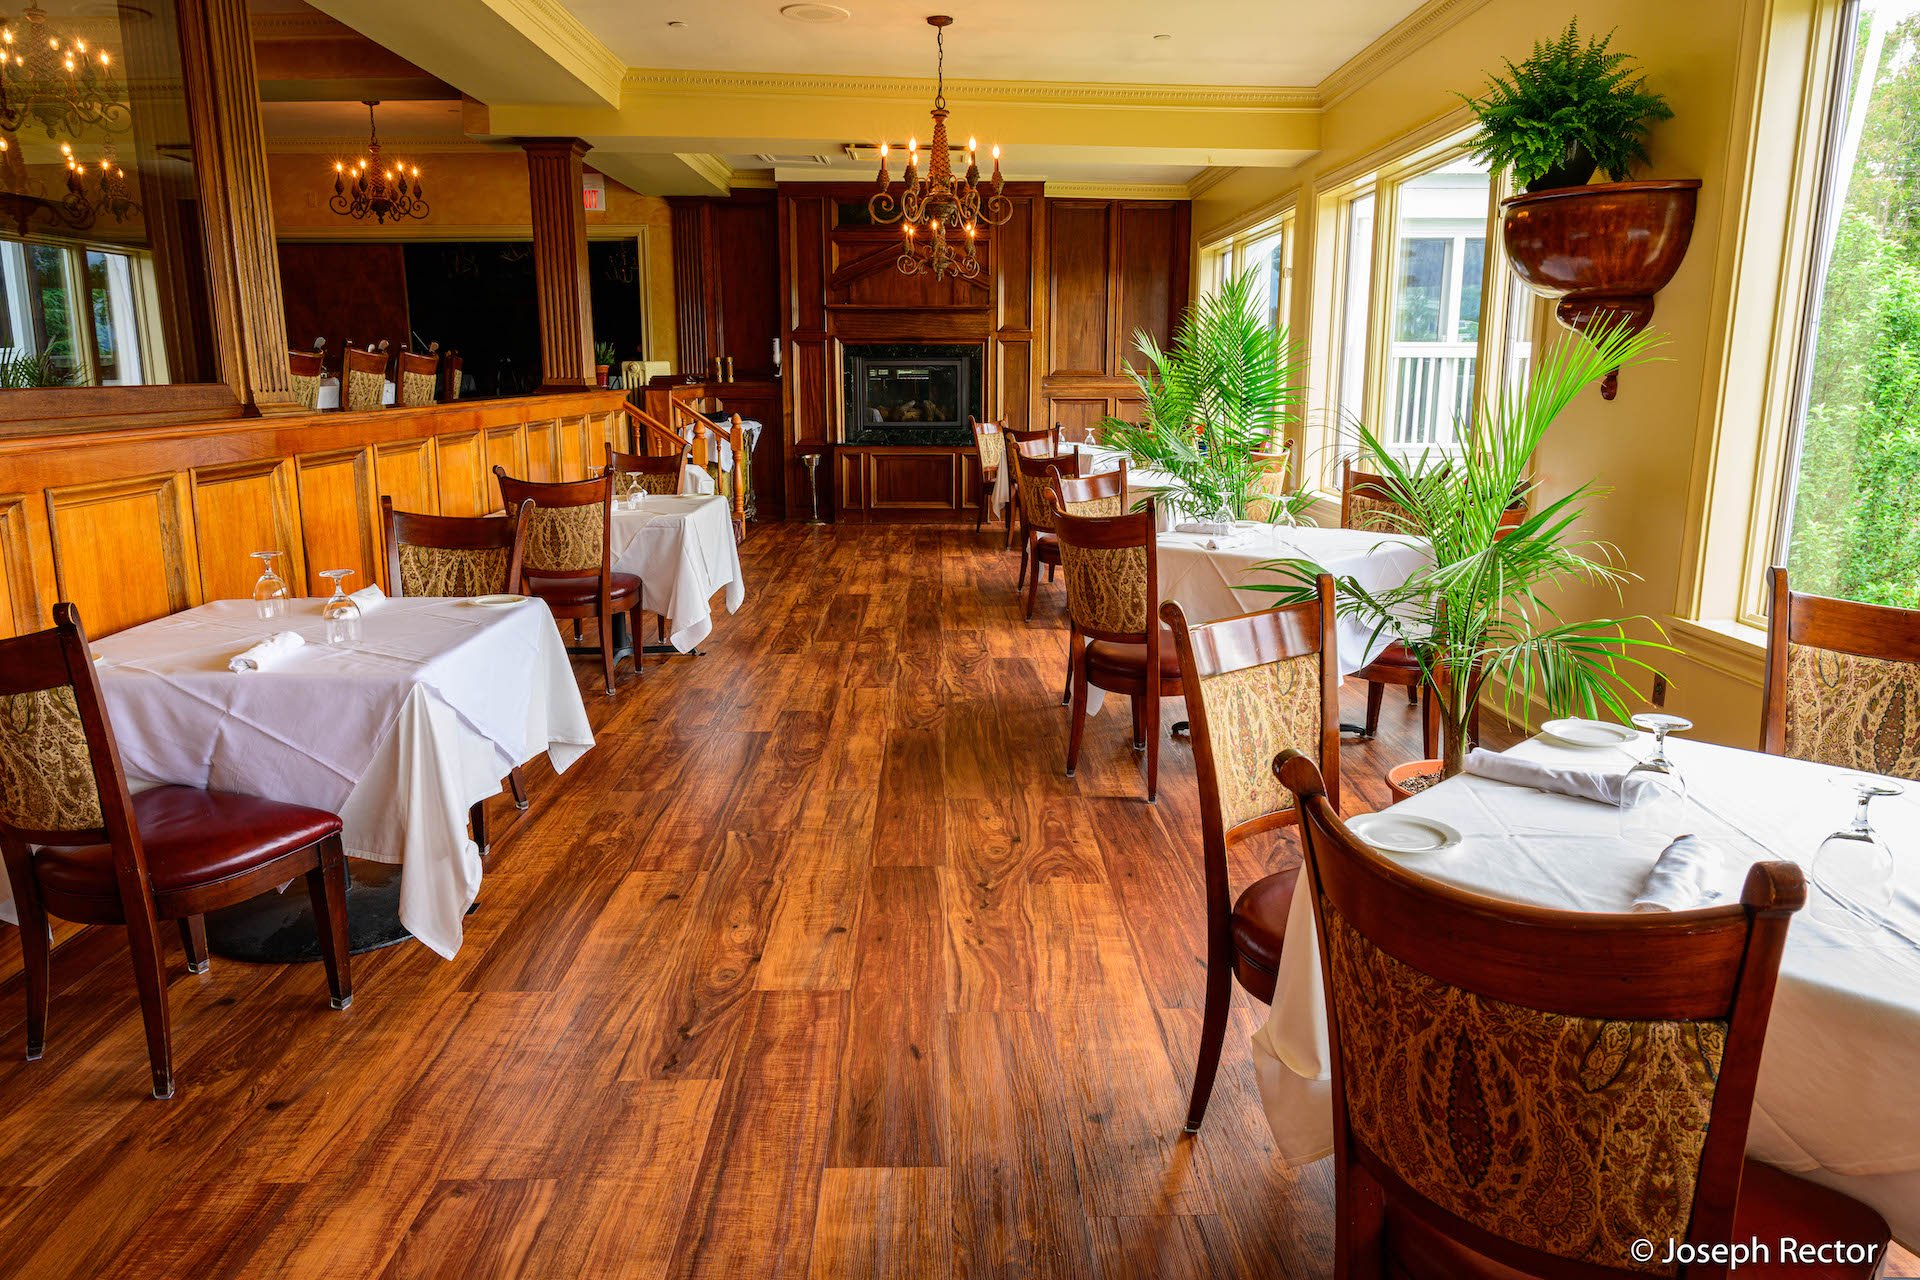 A bright dining room with wood floor and panelling at The View restaurant